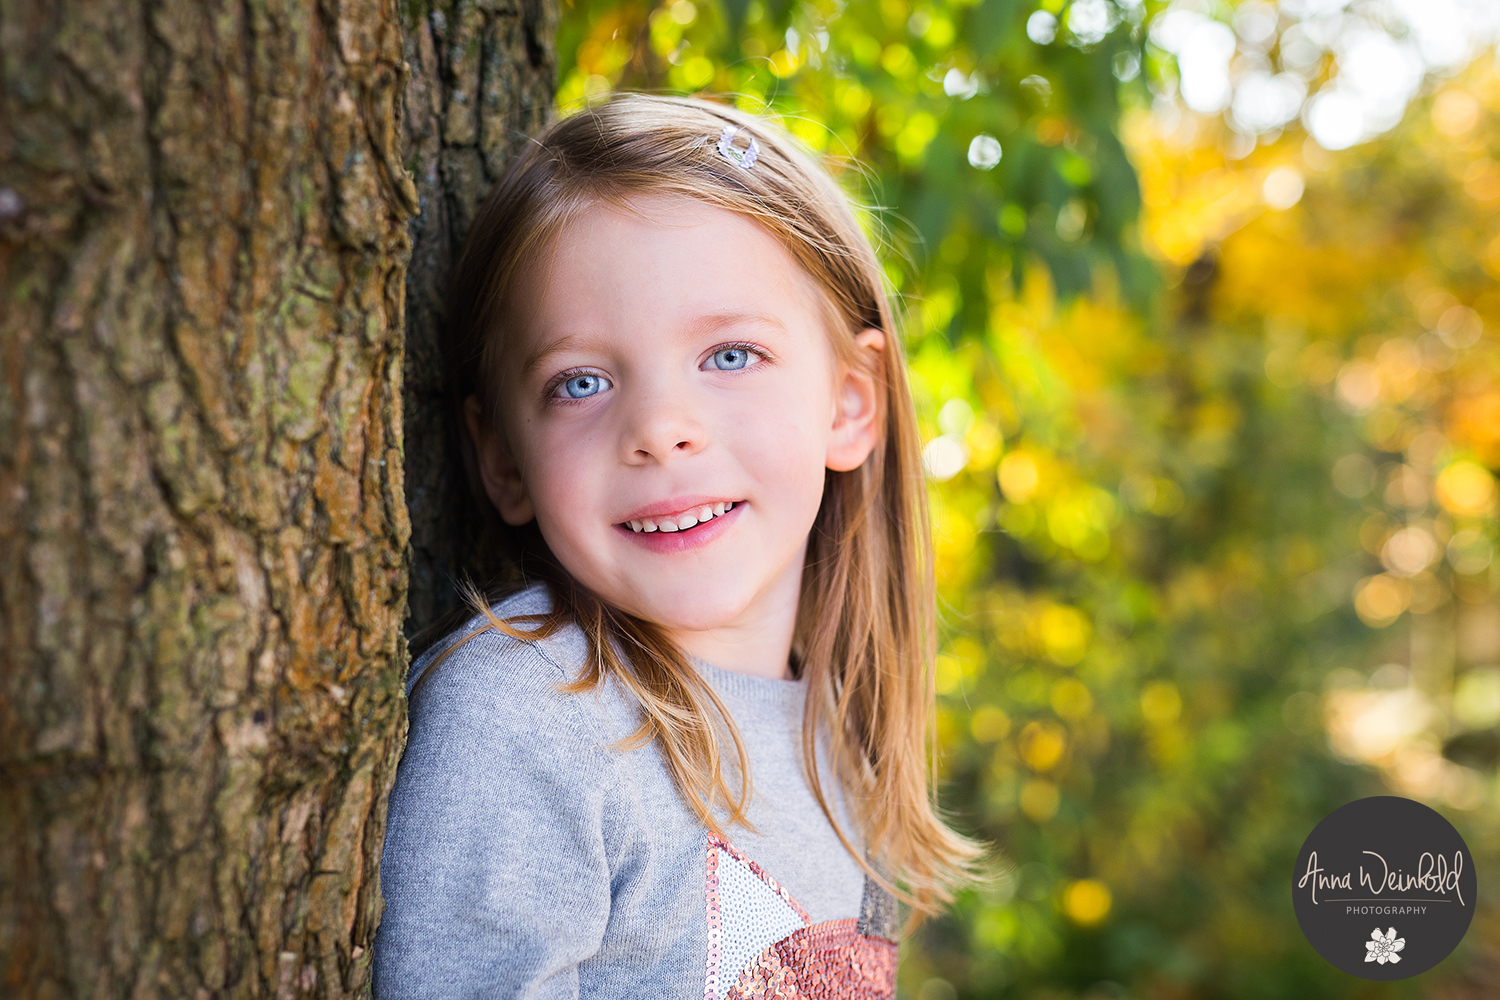 Anna-Weinhold-Photography_Kindertreff_Bielert_0272_Name